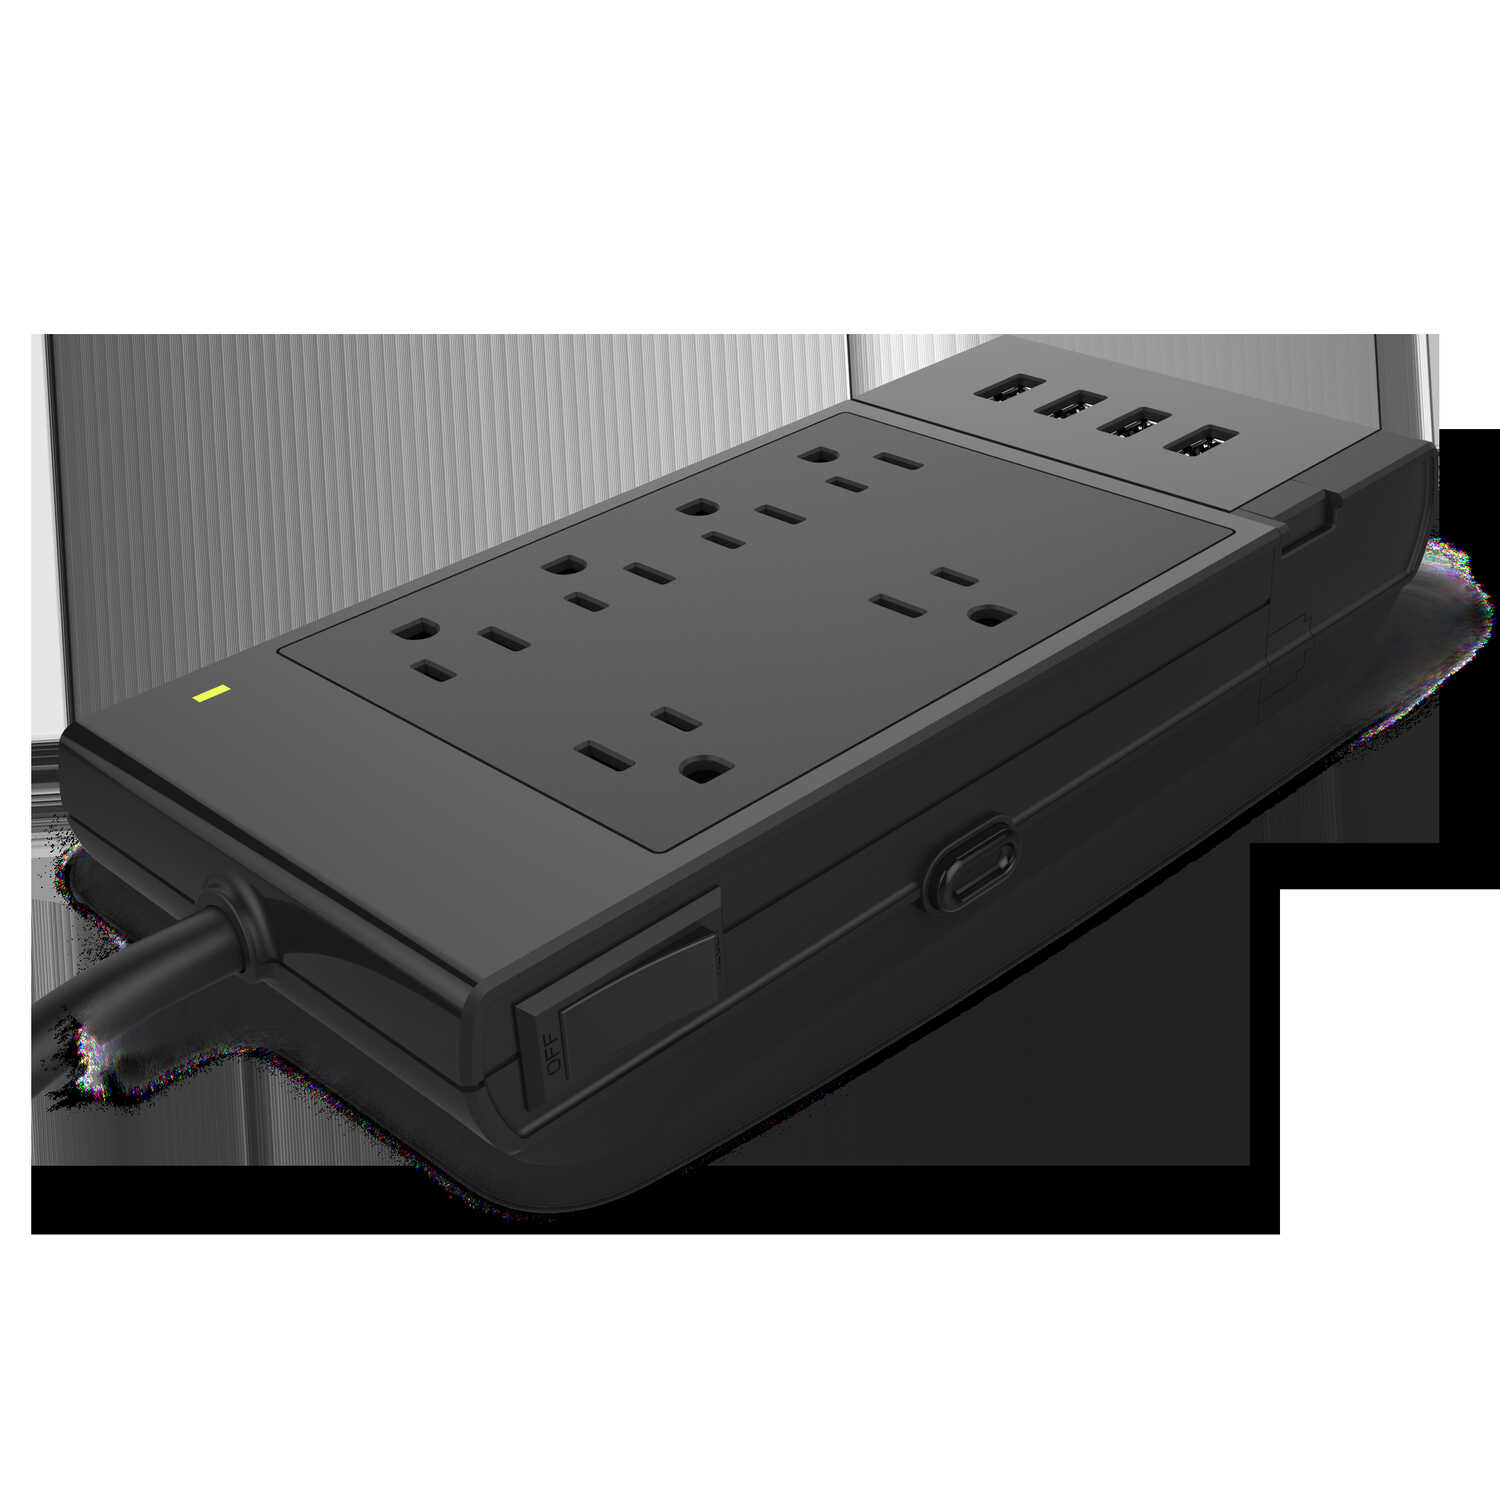 Monster Cable  1080 J 4 ft. L 6 outlets Surge Protector